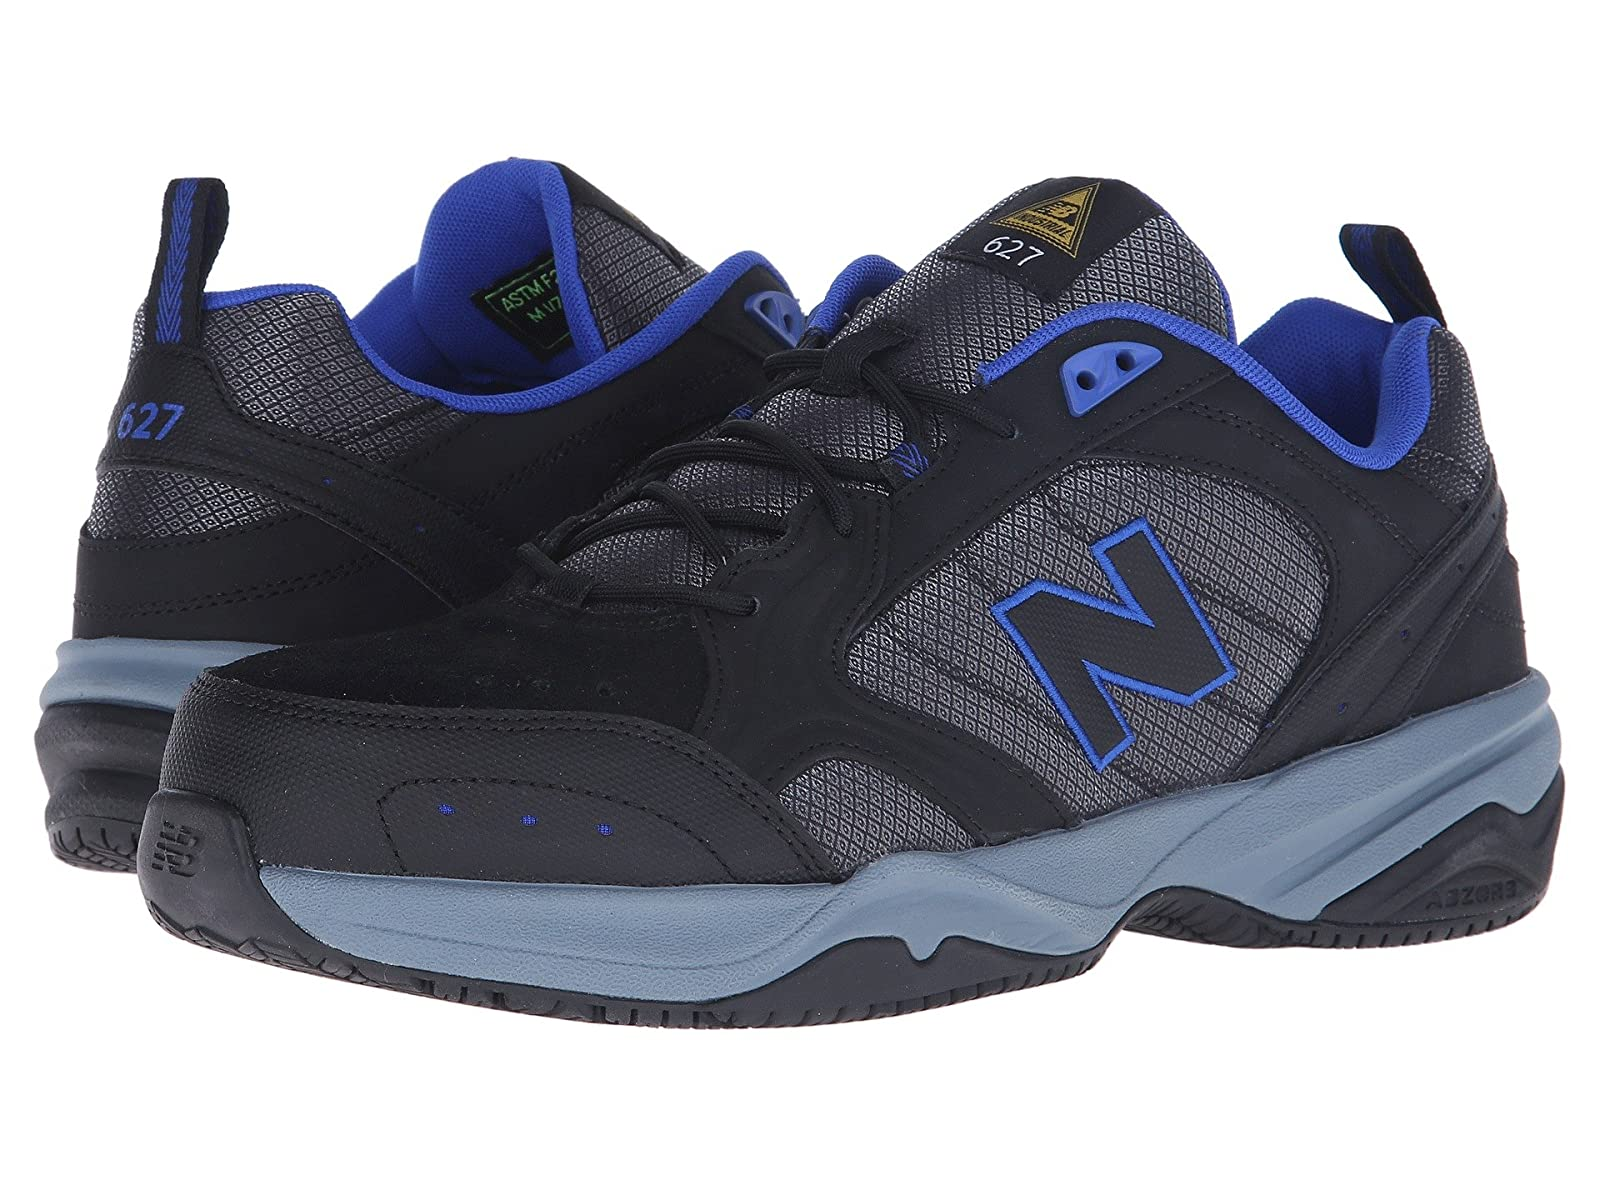 New Balance MID627Cheap and distinctive eye-catching shoes